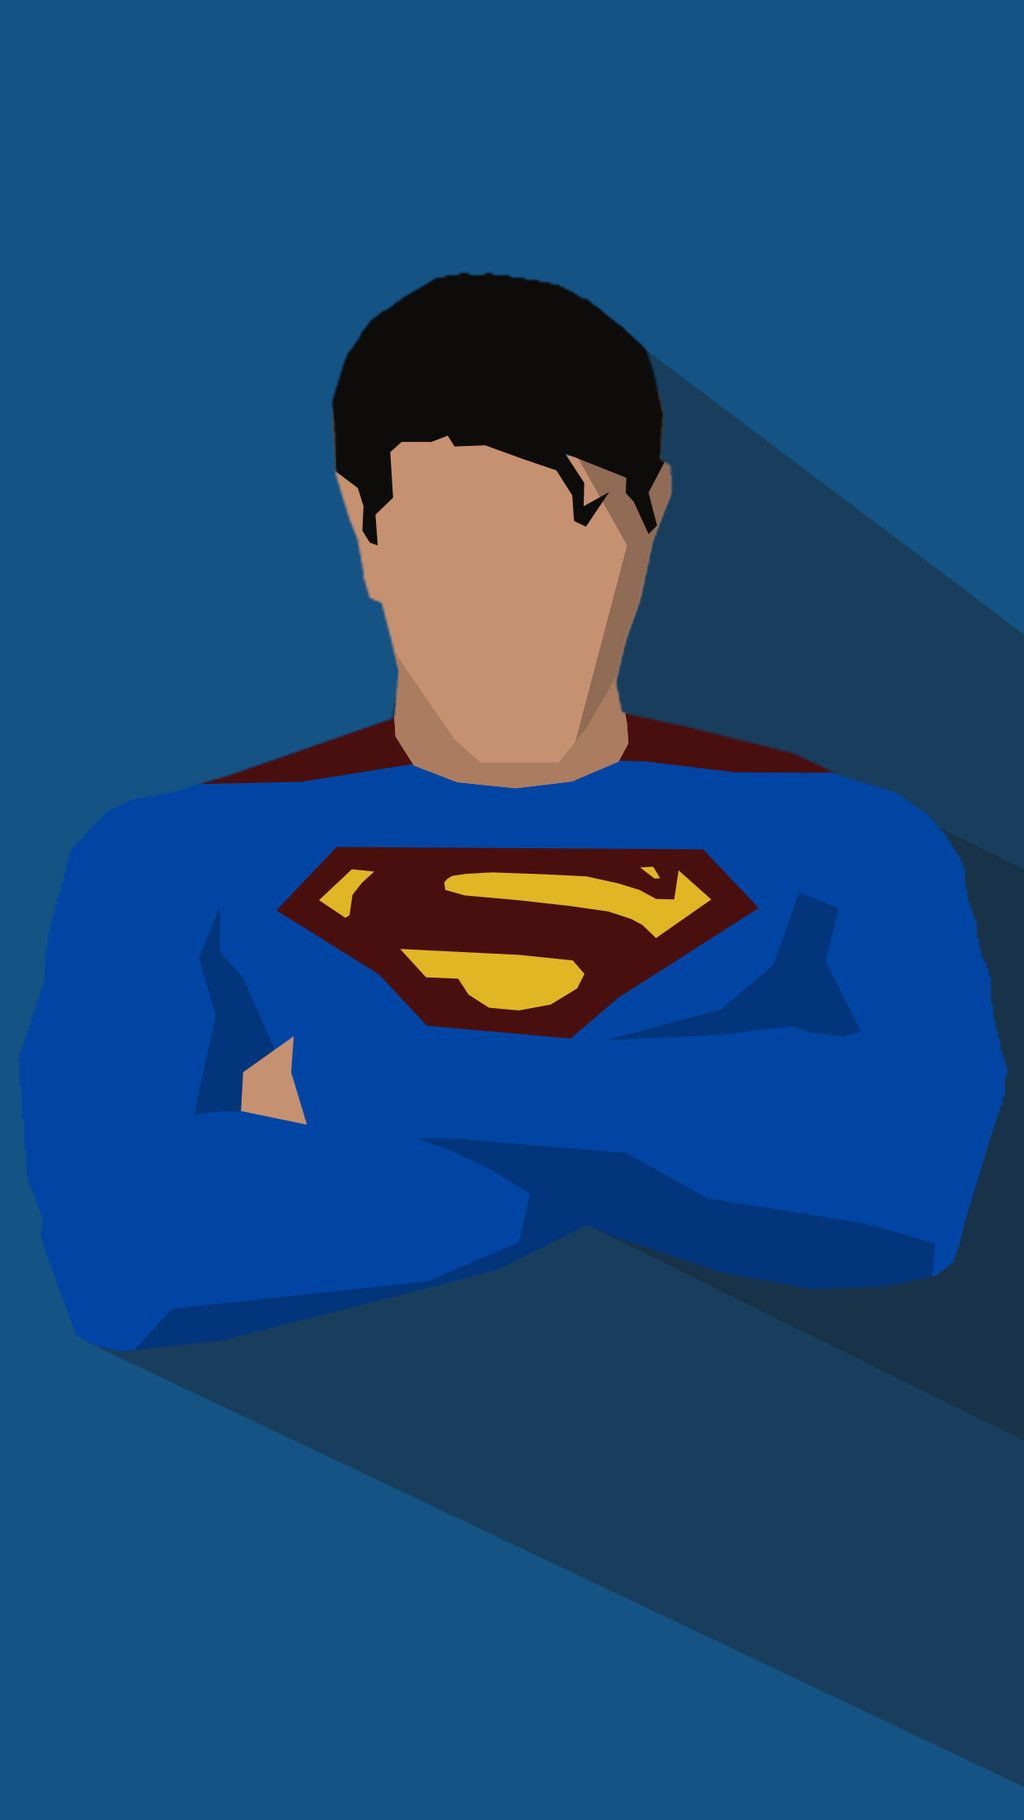 "1440x1280 Comics/Superman (1440x1280) Wallpaper ID: 138841 - Mobile Abyss"">"